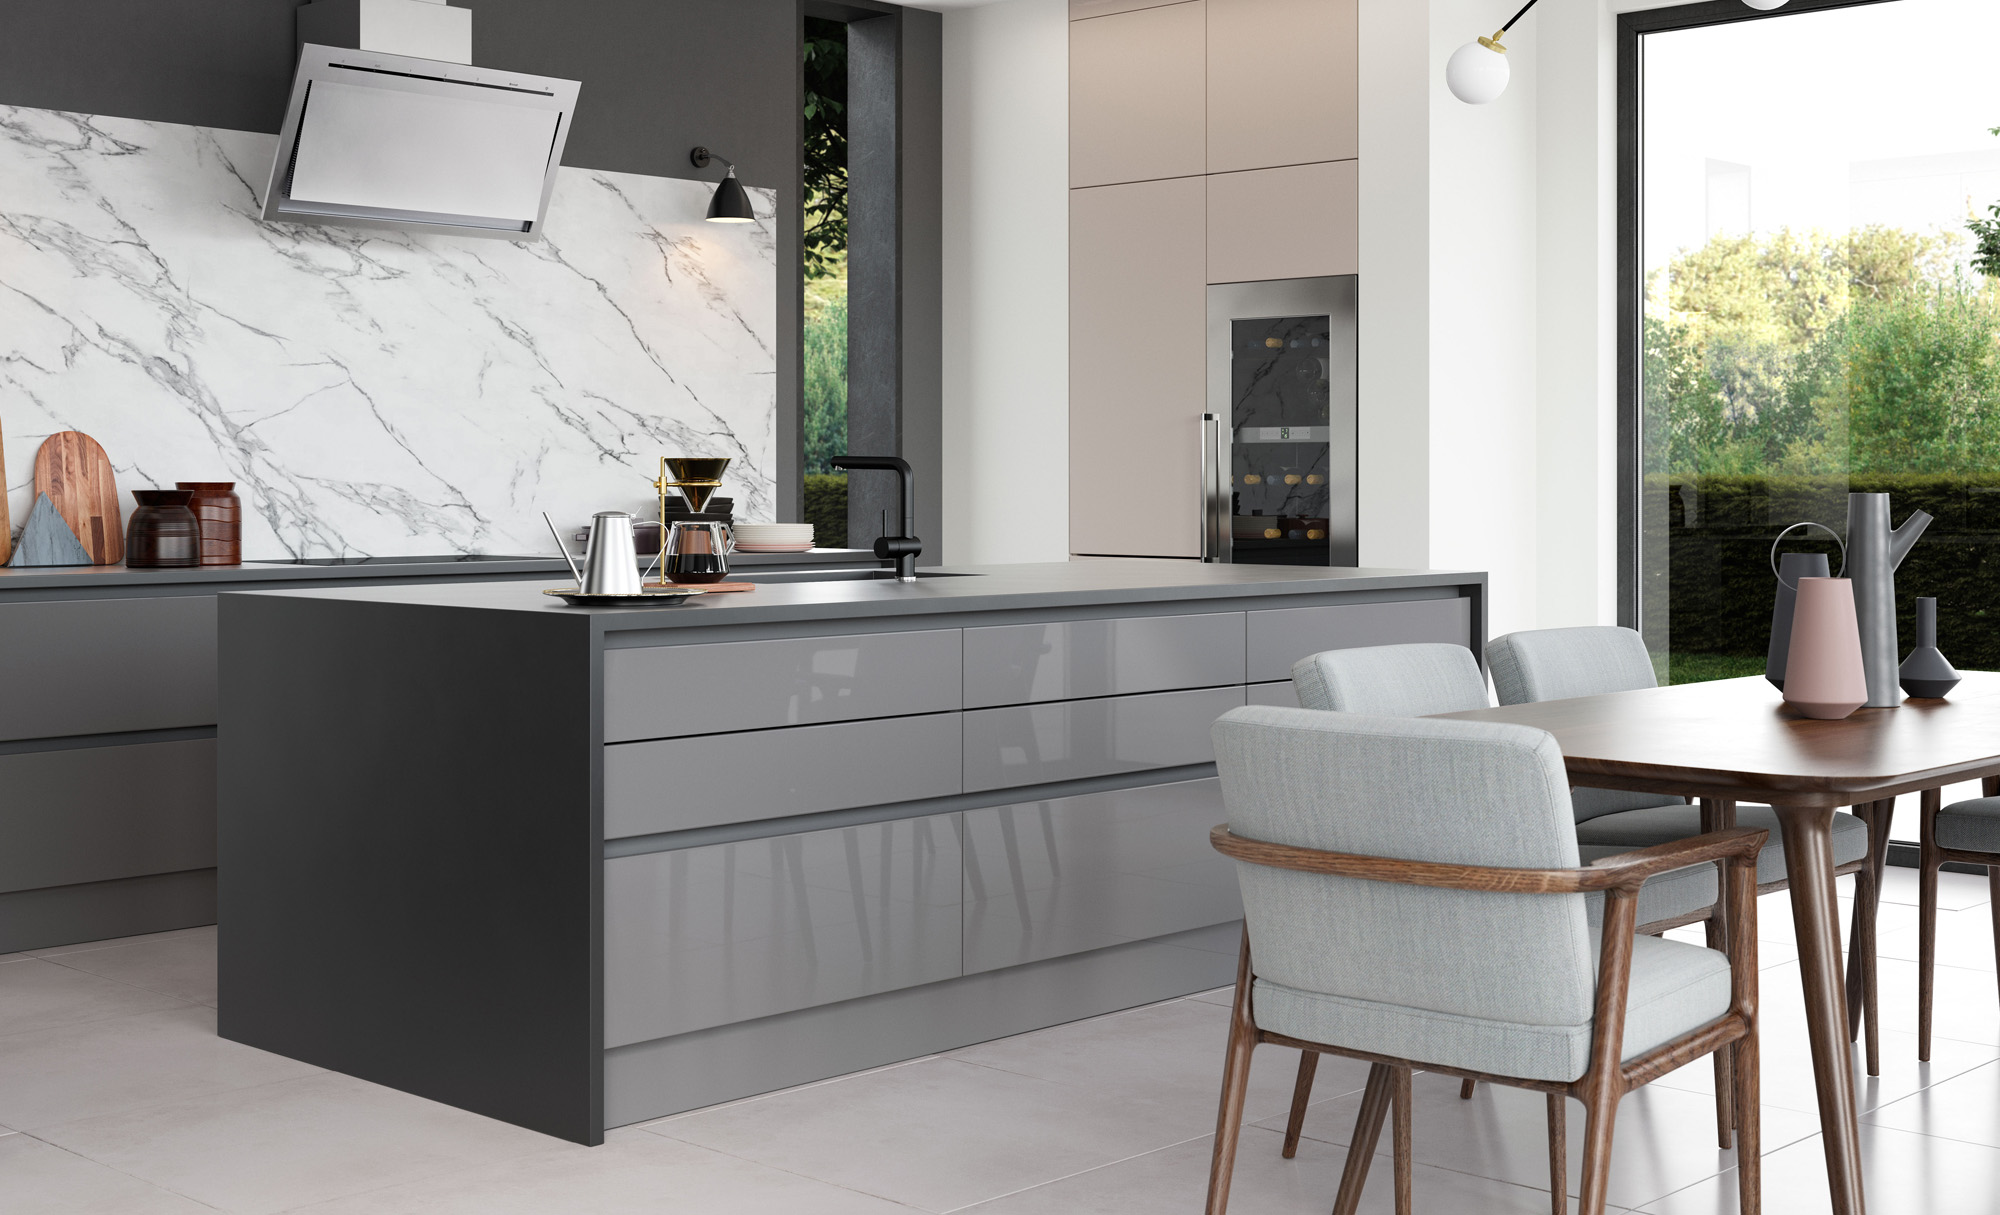 Zola Gloss Handleless - Anthracite grey kitchen